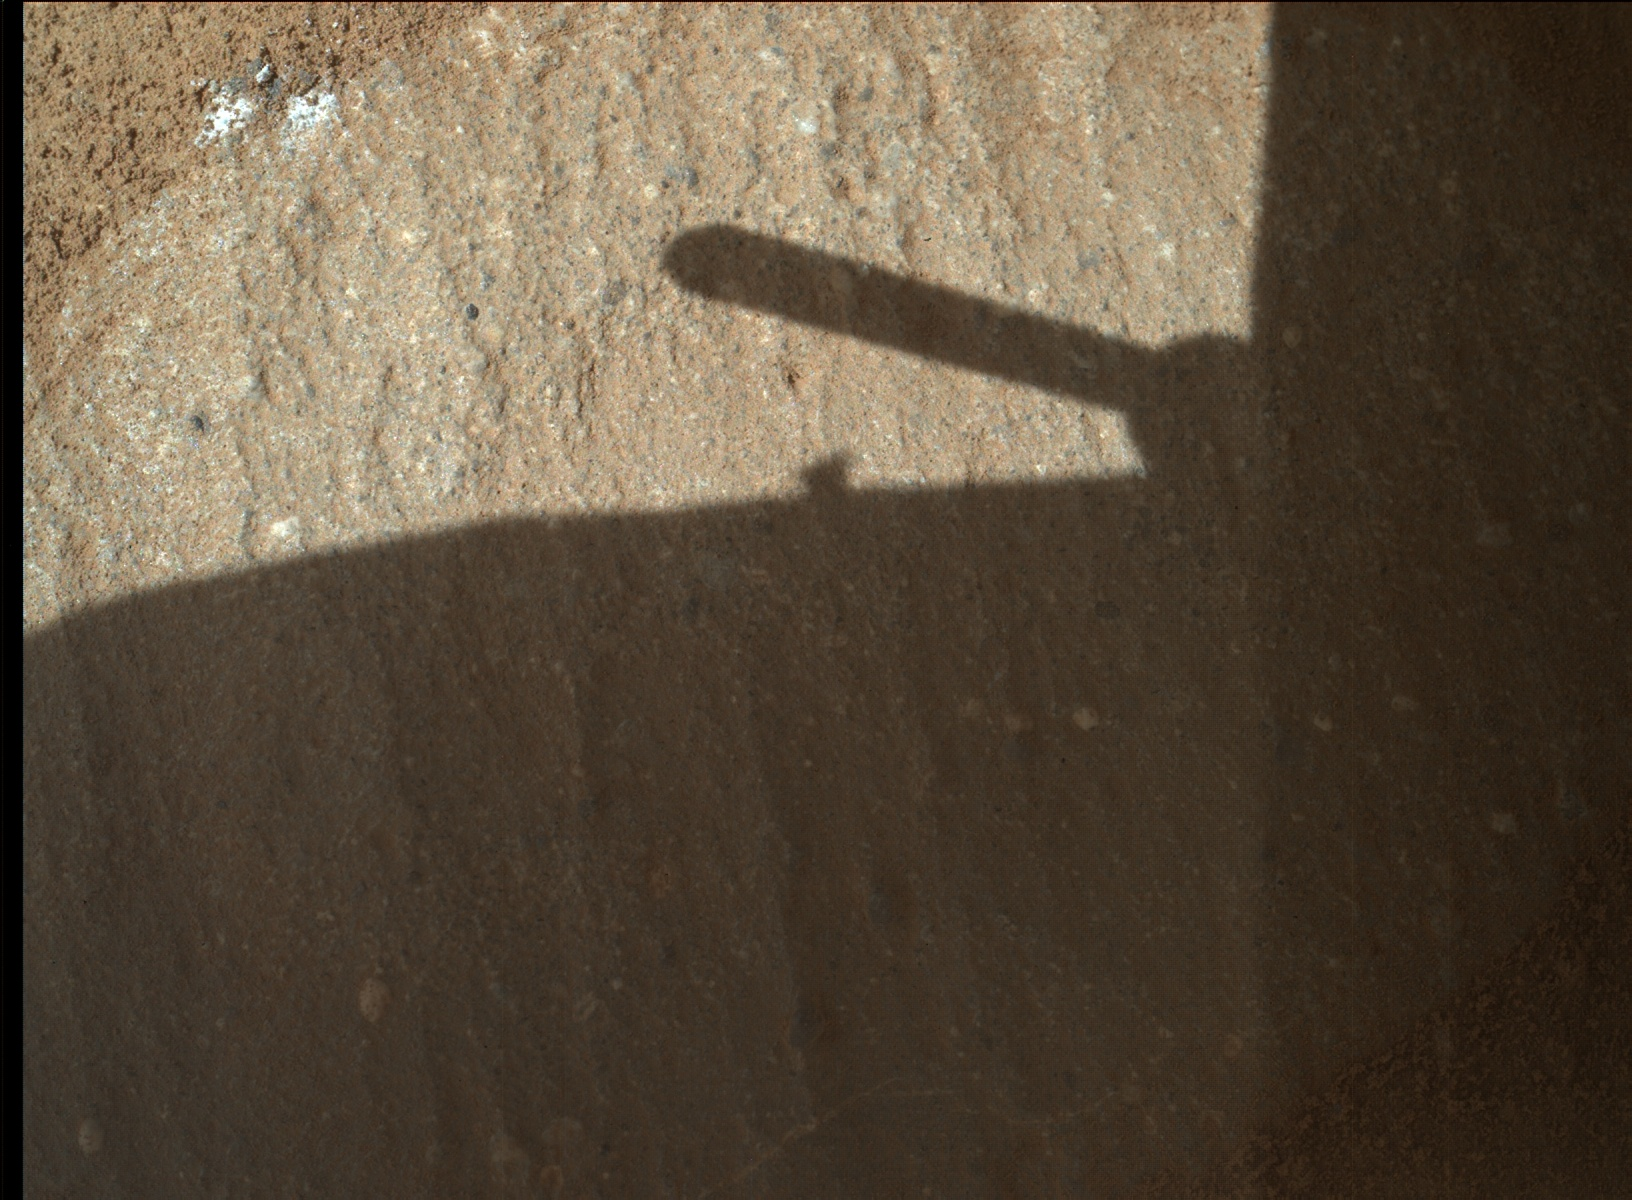 Nasa's Mars rover Curiosity acquired this image using its Mars Hand Lens Imager (MAHLI) on Sol 1319